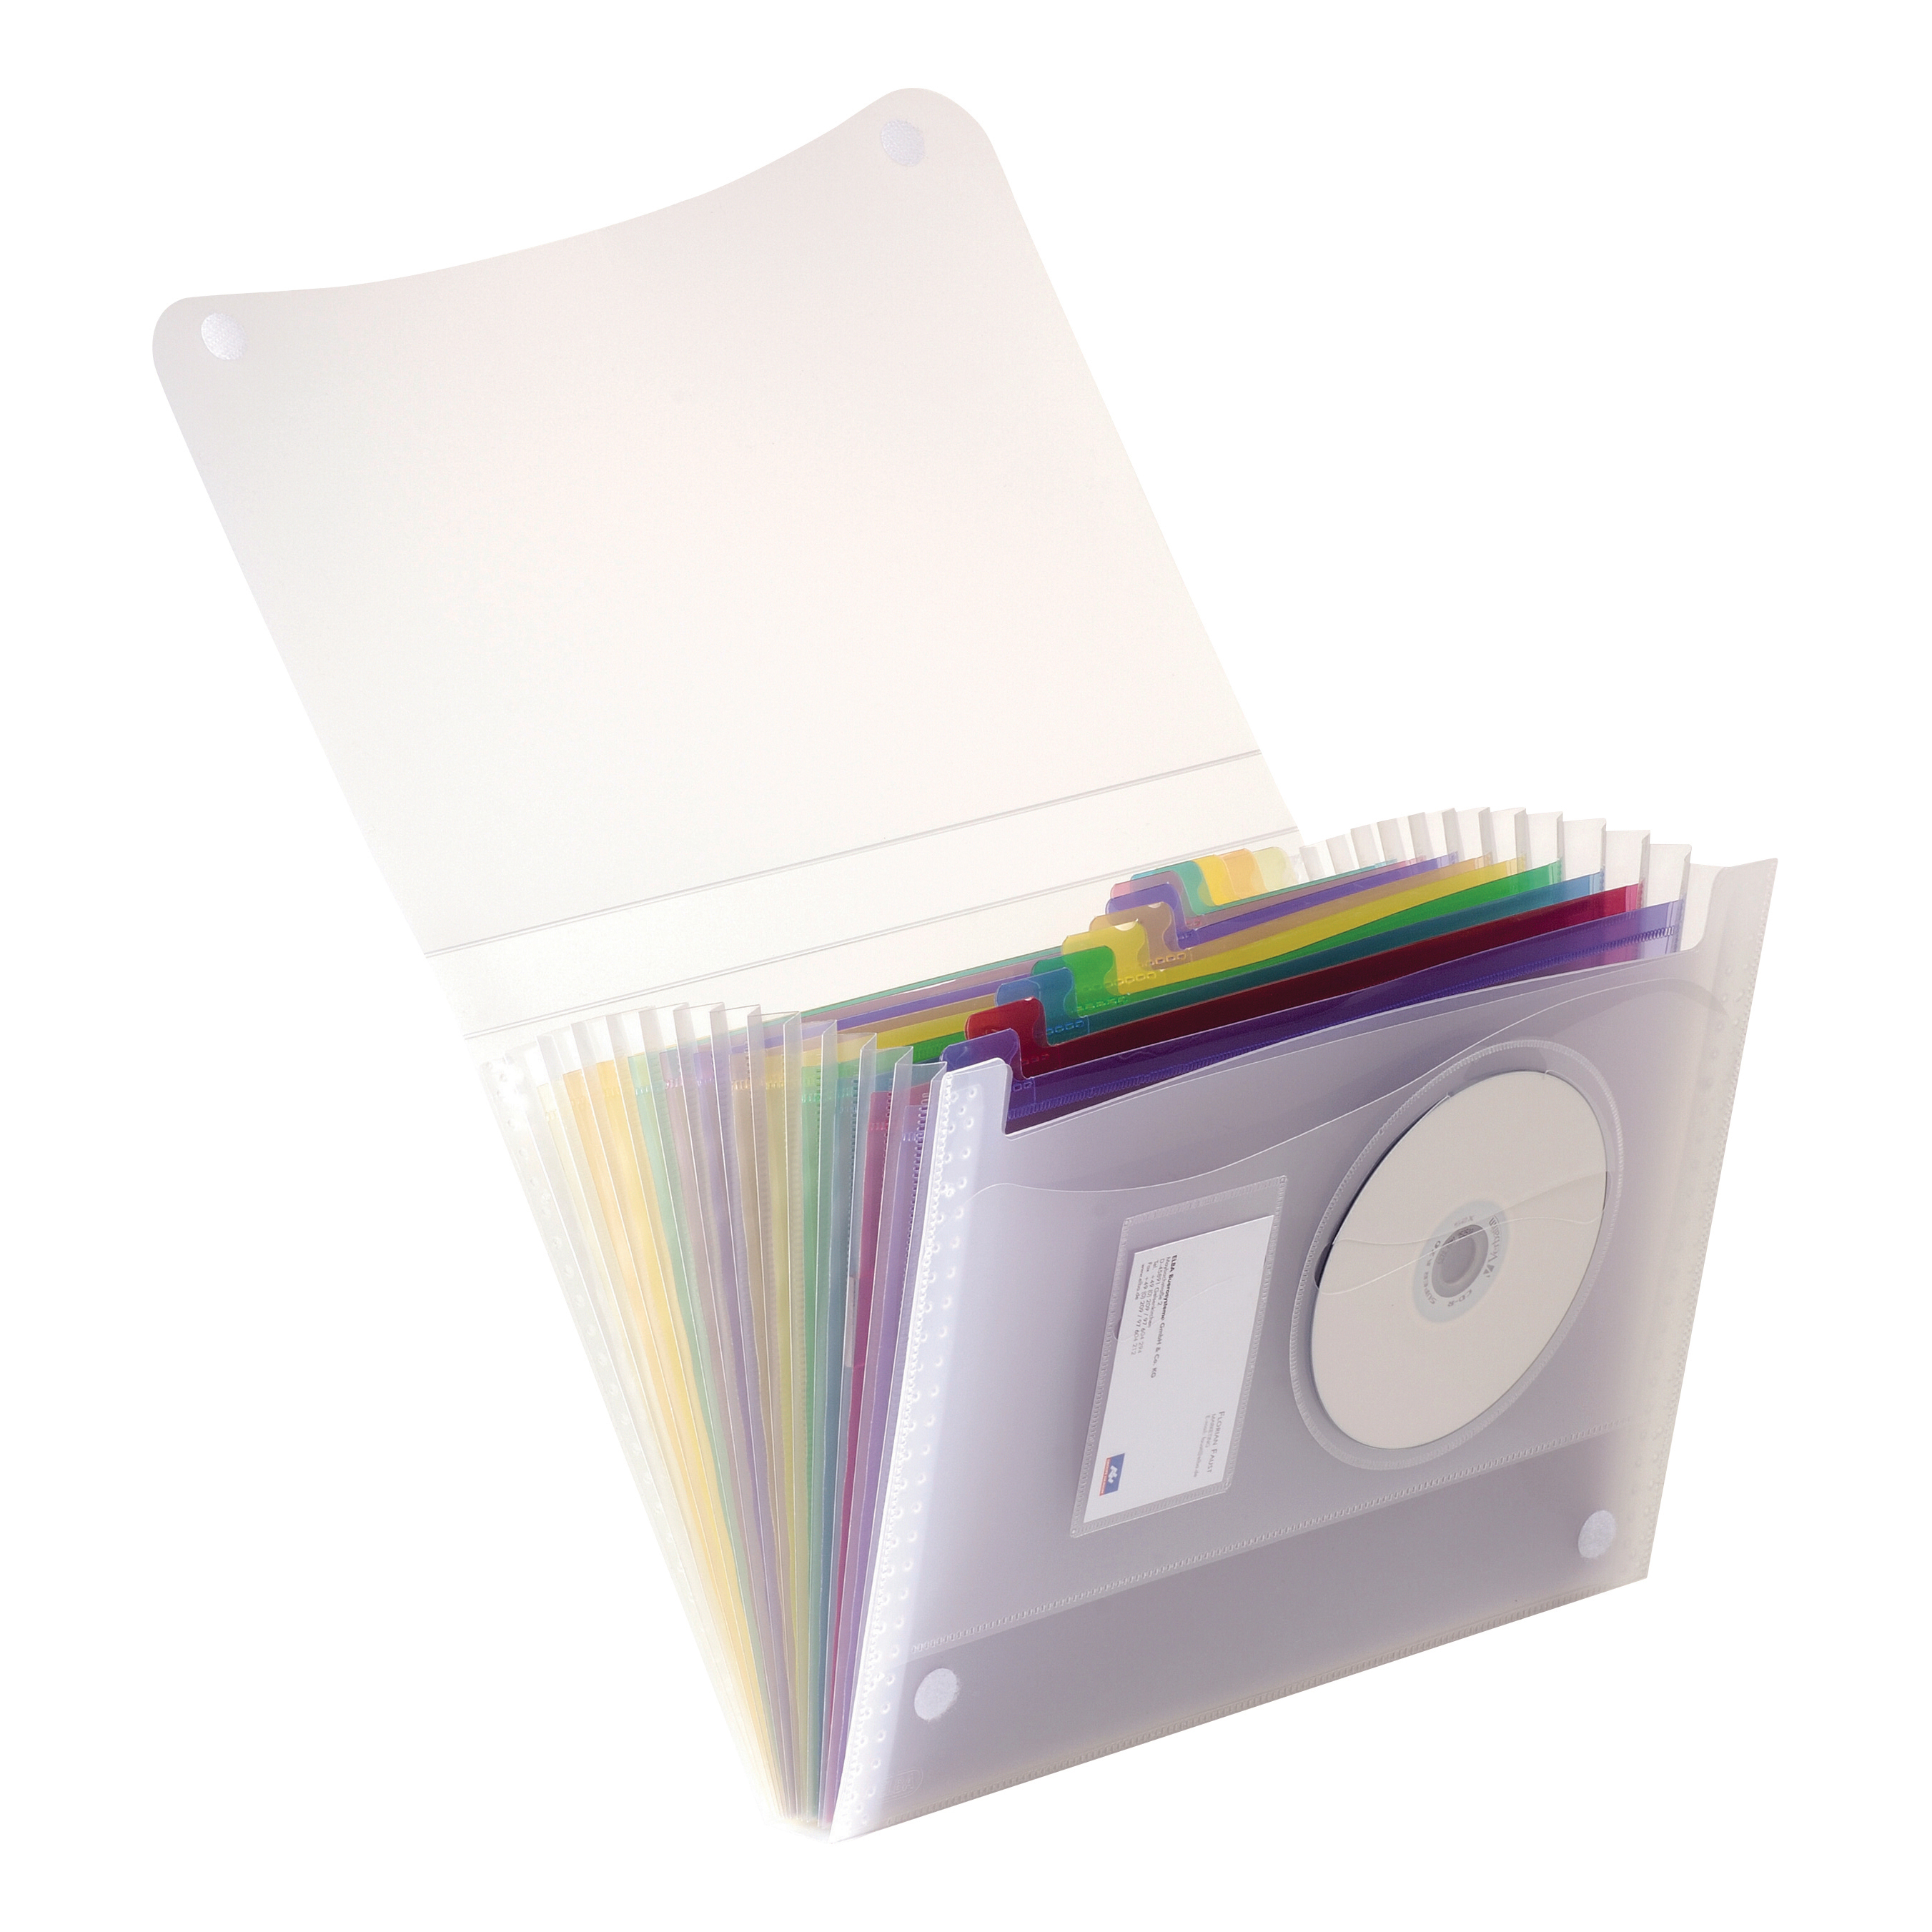 Expanding Files Oxford Expanding File Coloured 13 Pockets Polypropylene Velcro Fastening A4 Clr Ref 100208980